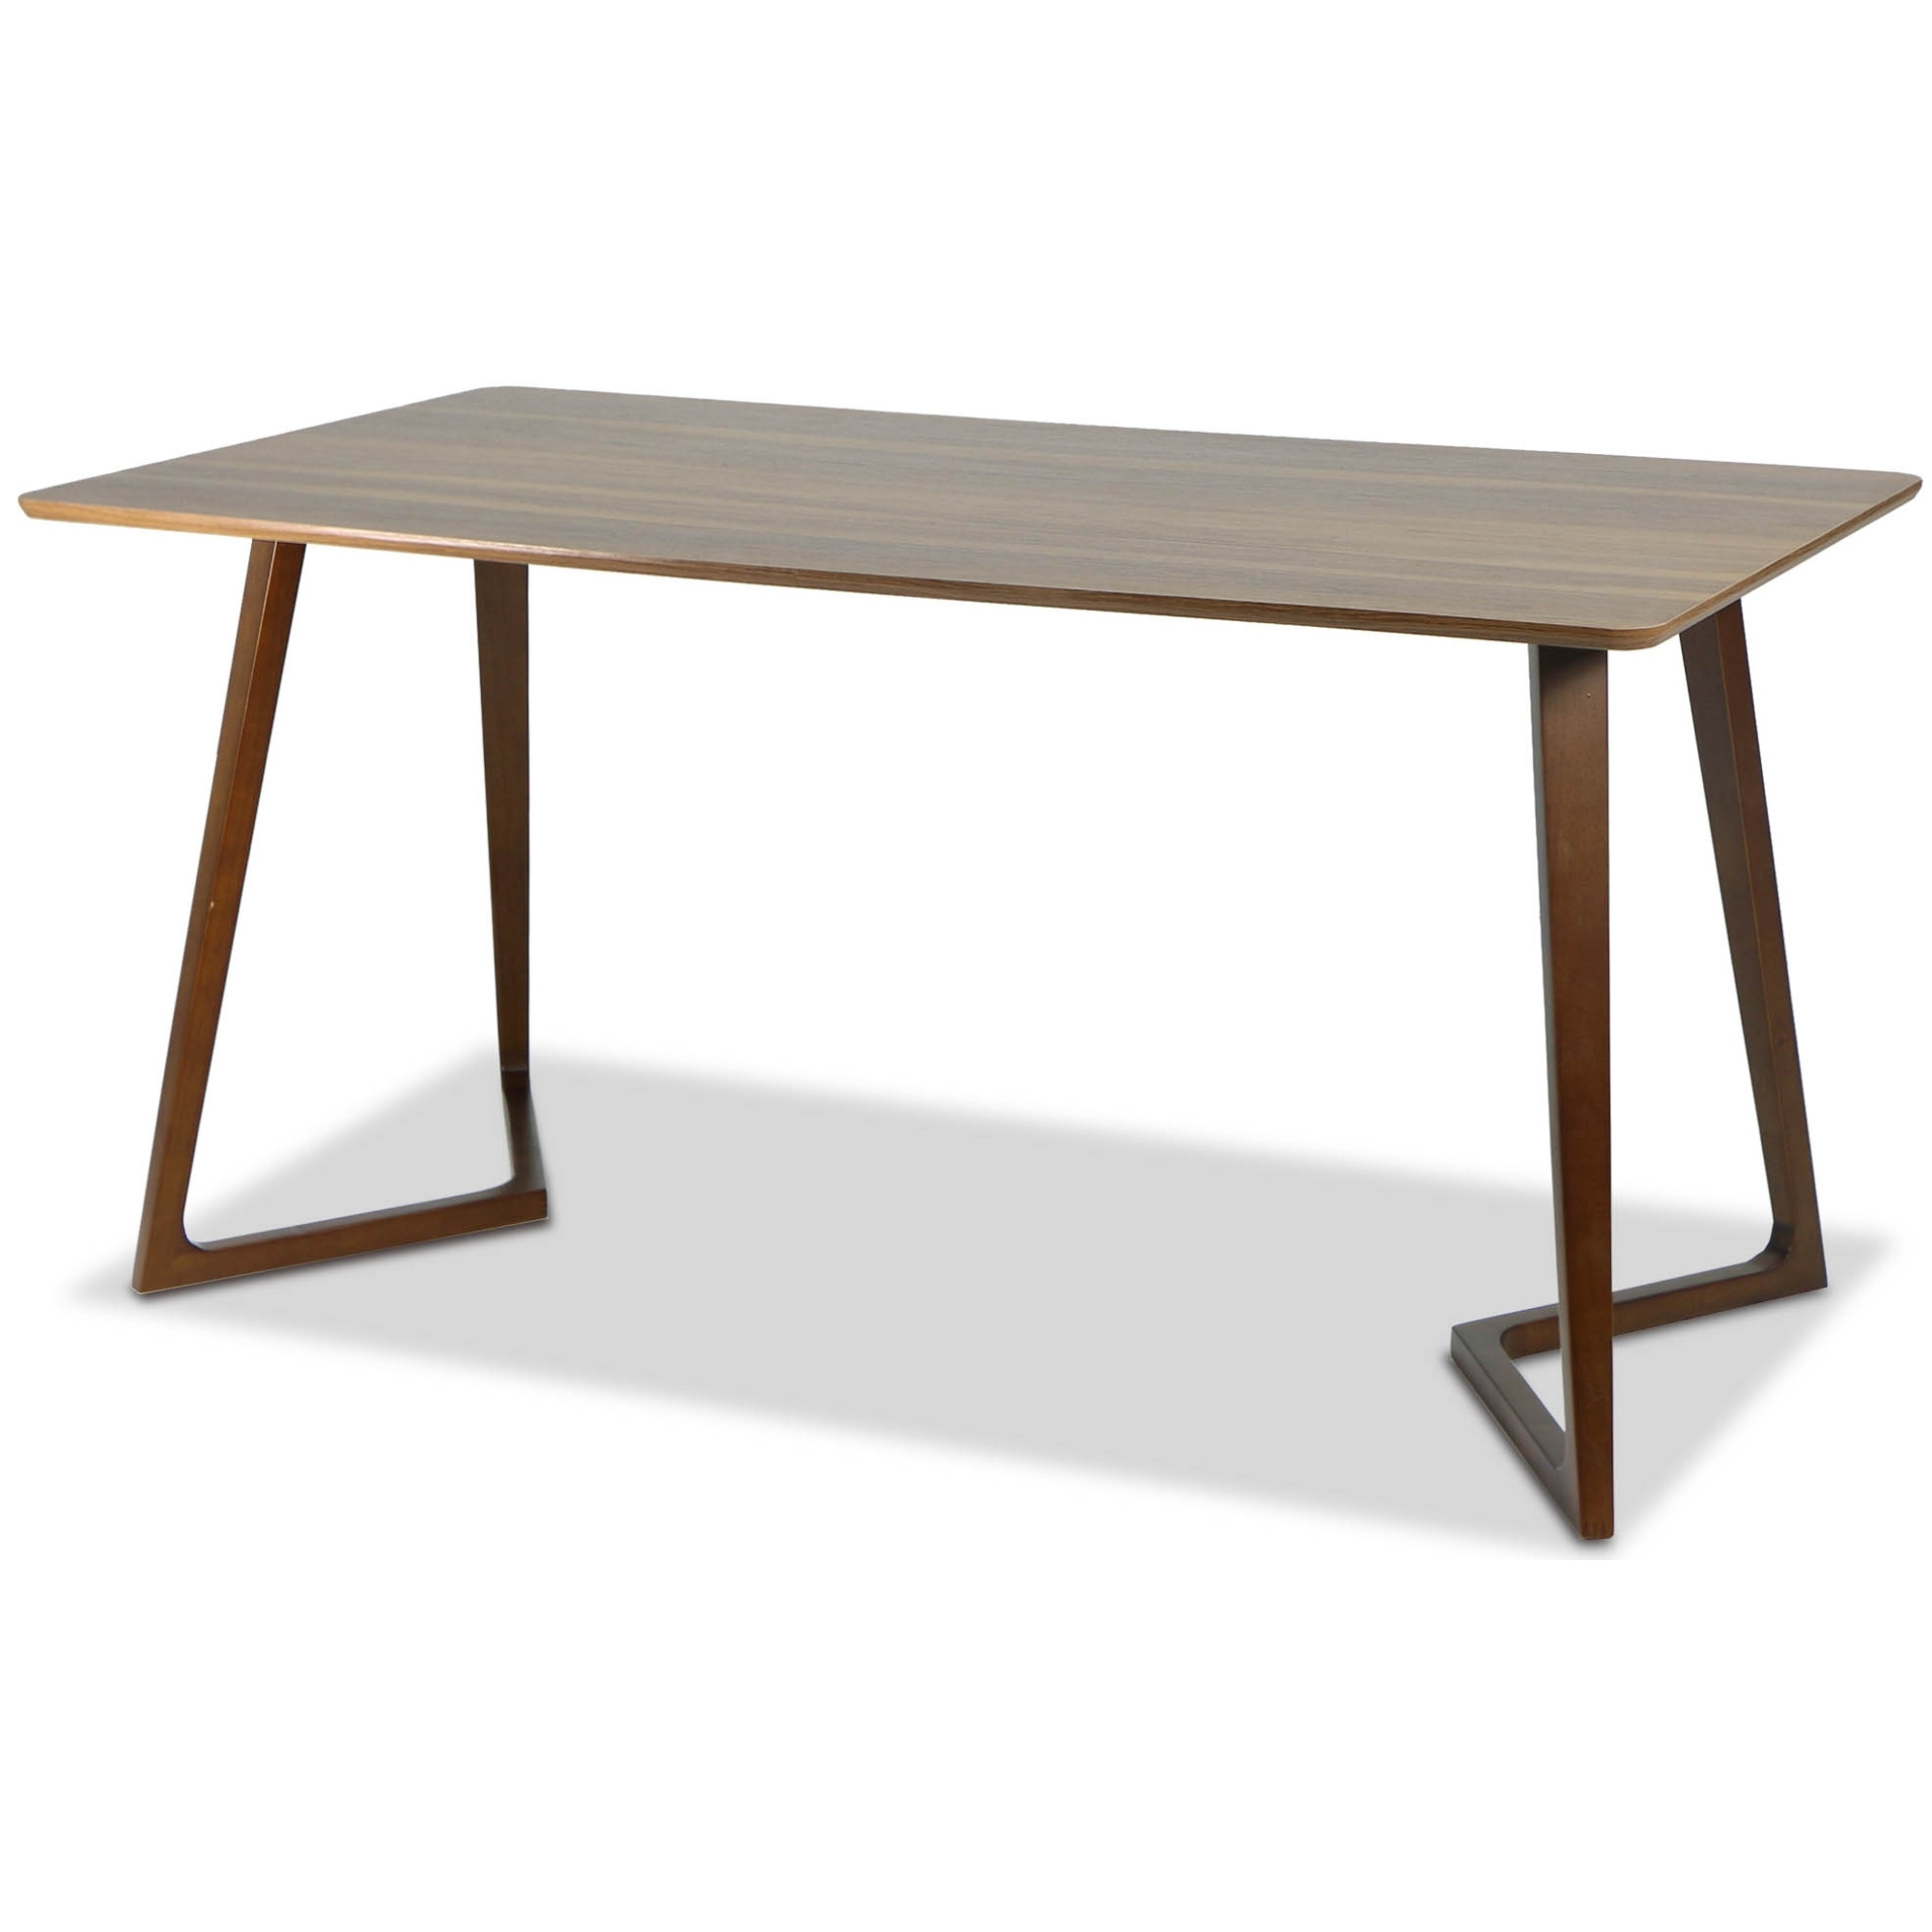 Well Known Weller Designer Wooden Dining Table (Walnut) For Wood Dining Tables (View 20 of 25)